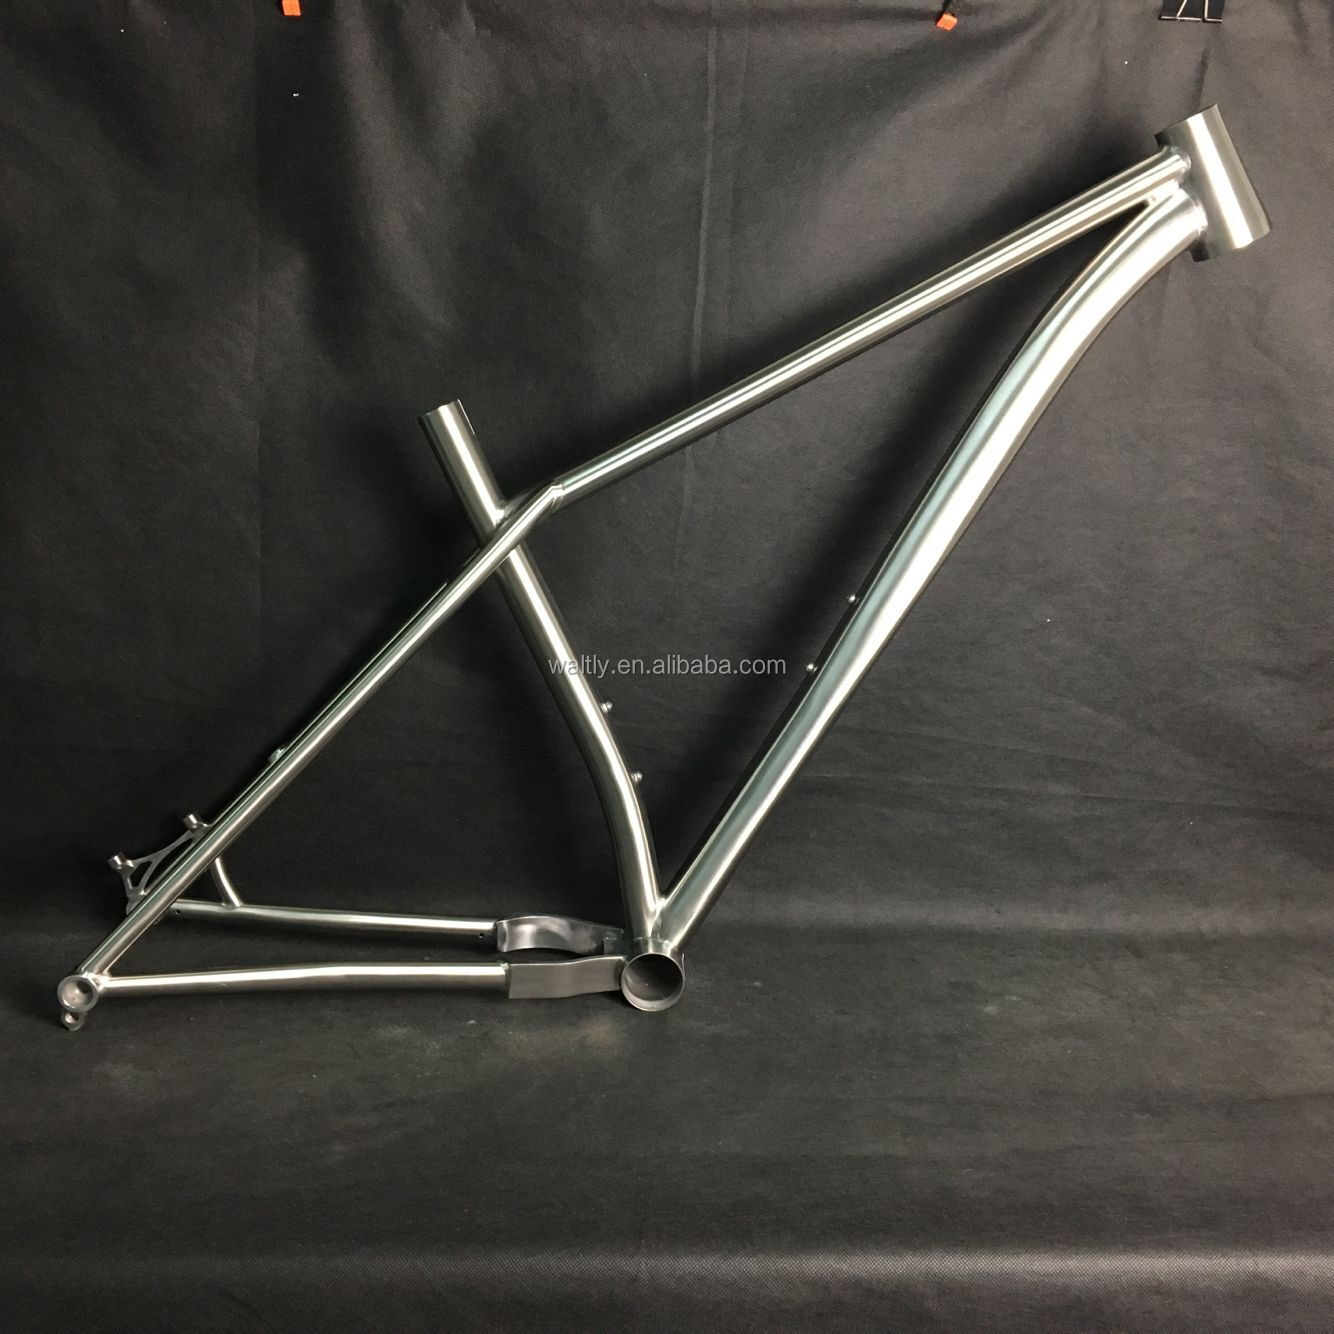 29er plus bike frame (1)